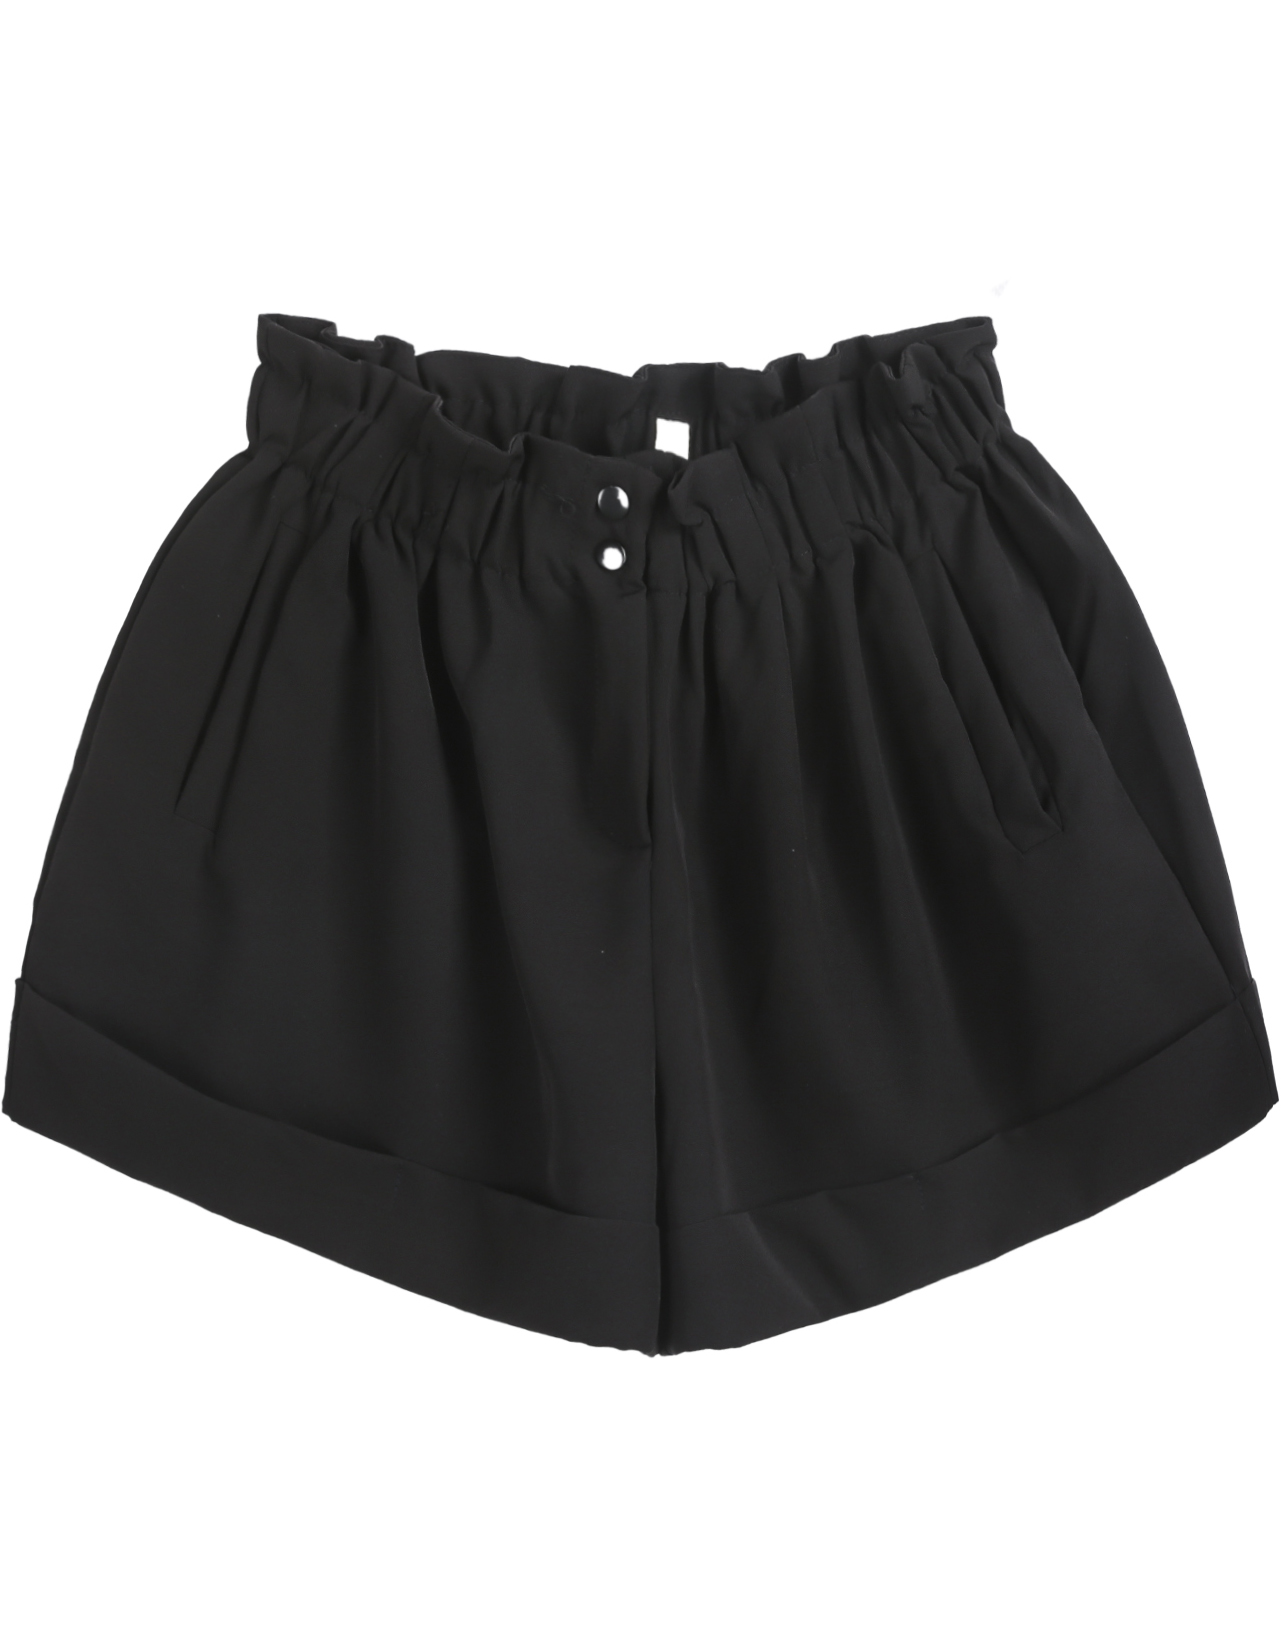 Black Elastic Waist Pockets Shorts - Sheinside.com